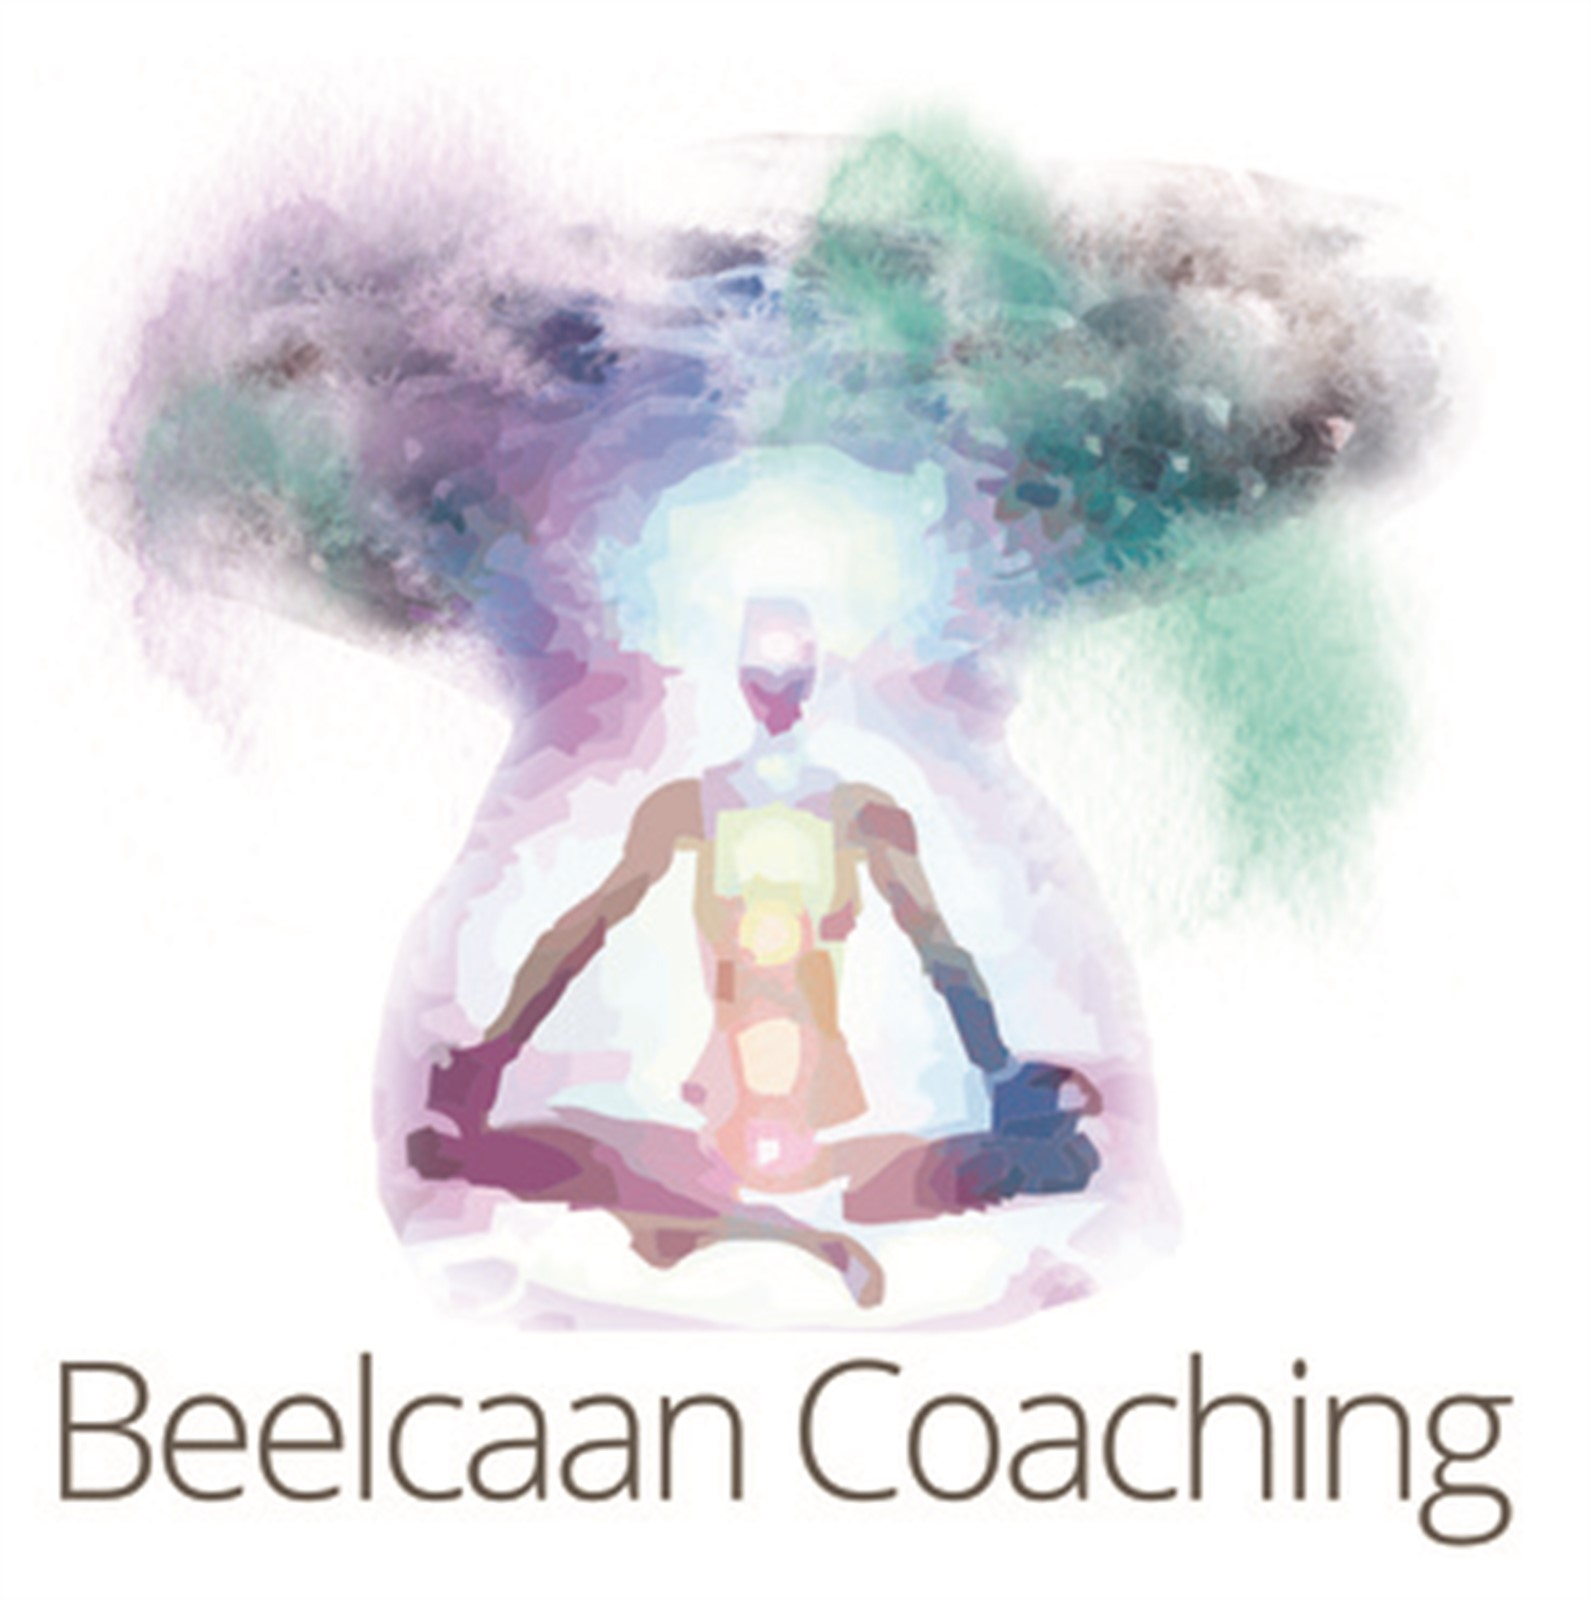 Beelcaan Coaching